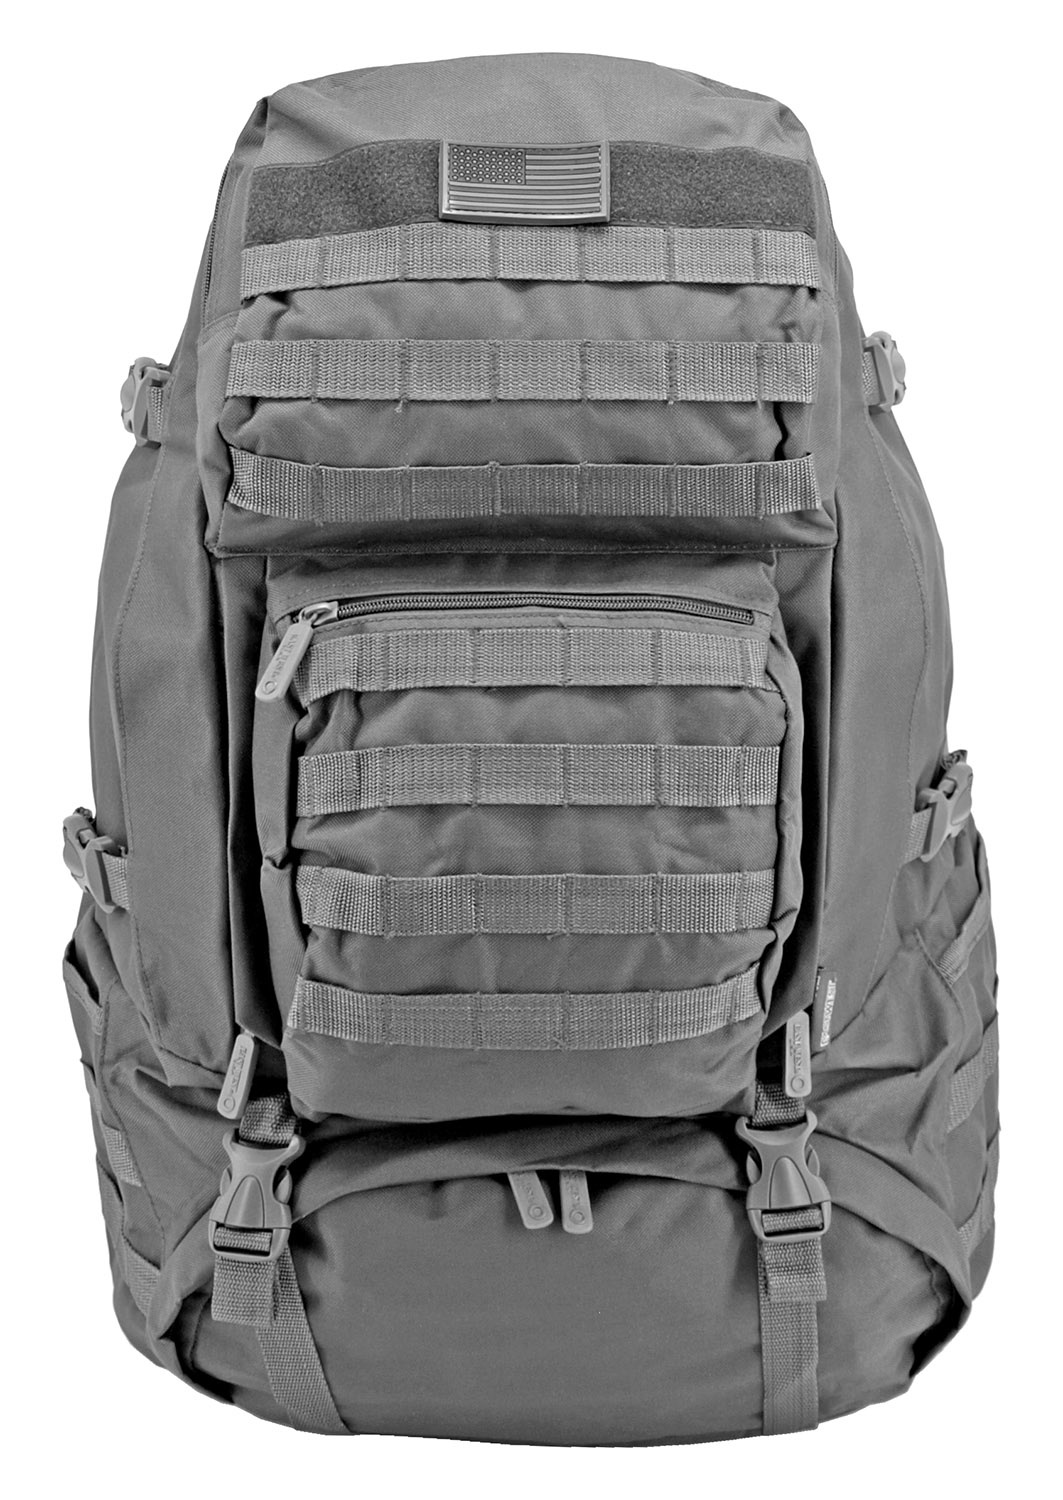 Large Tactical Readiness Pack - Grey